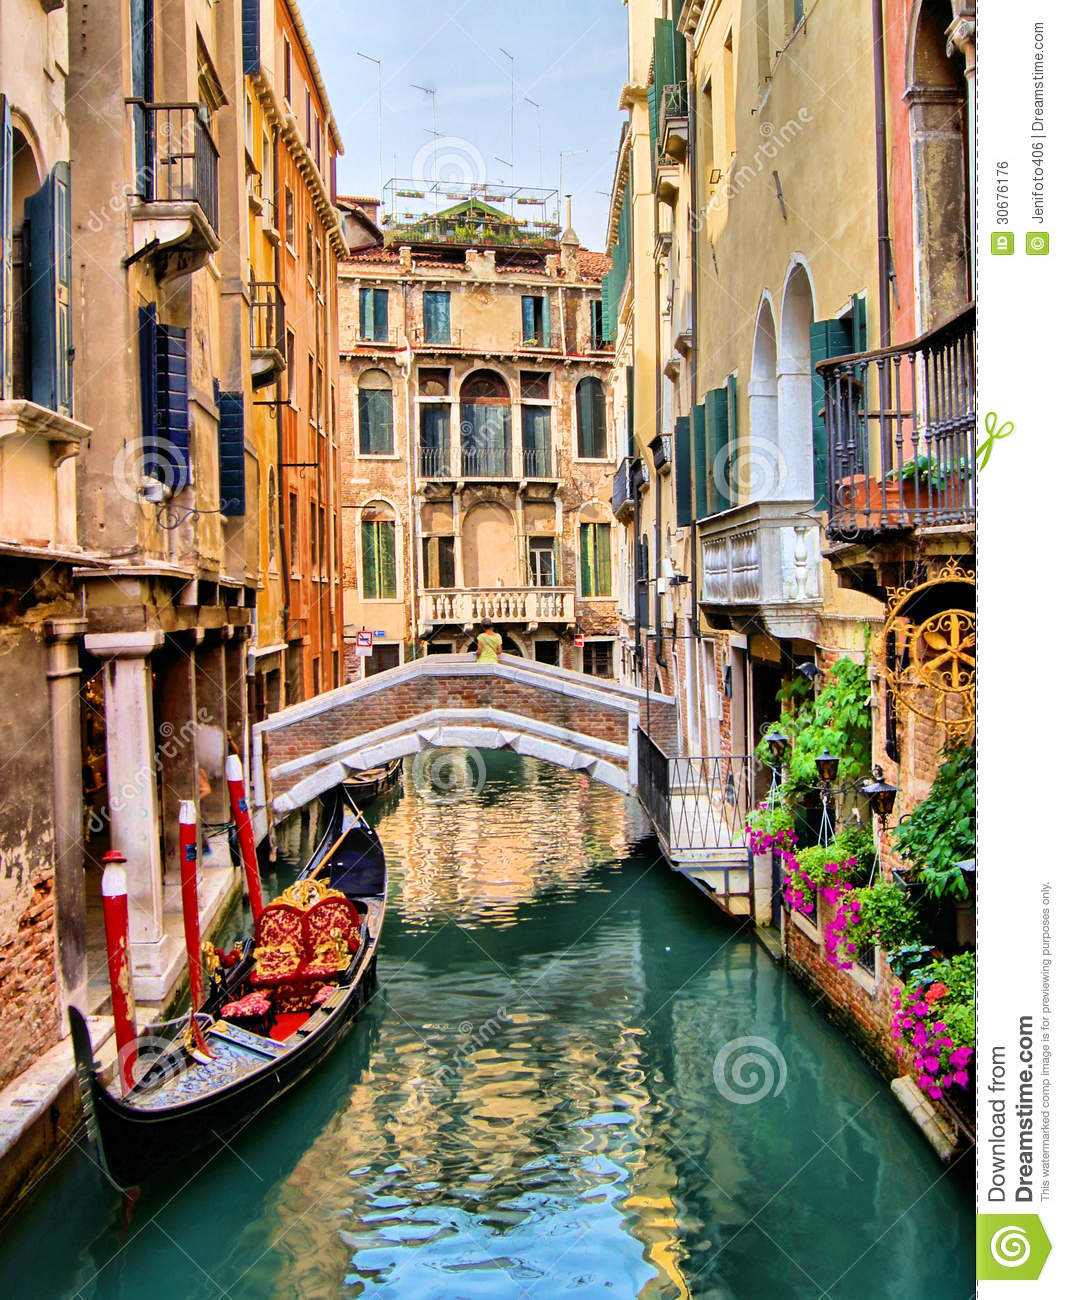 Venice canals stock photo. Image of boat, flowers, antique - 30676176